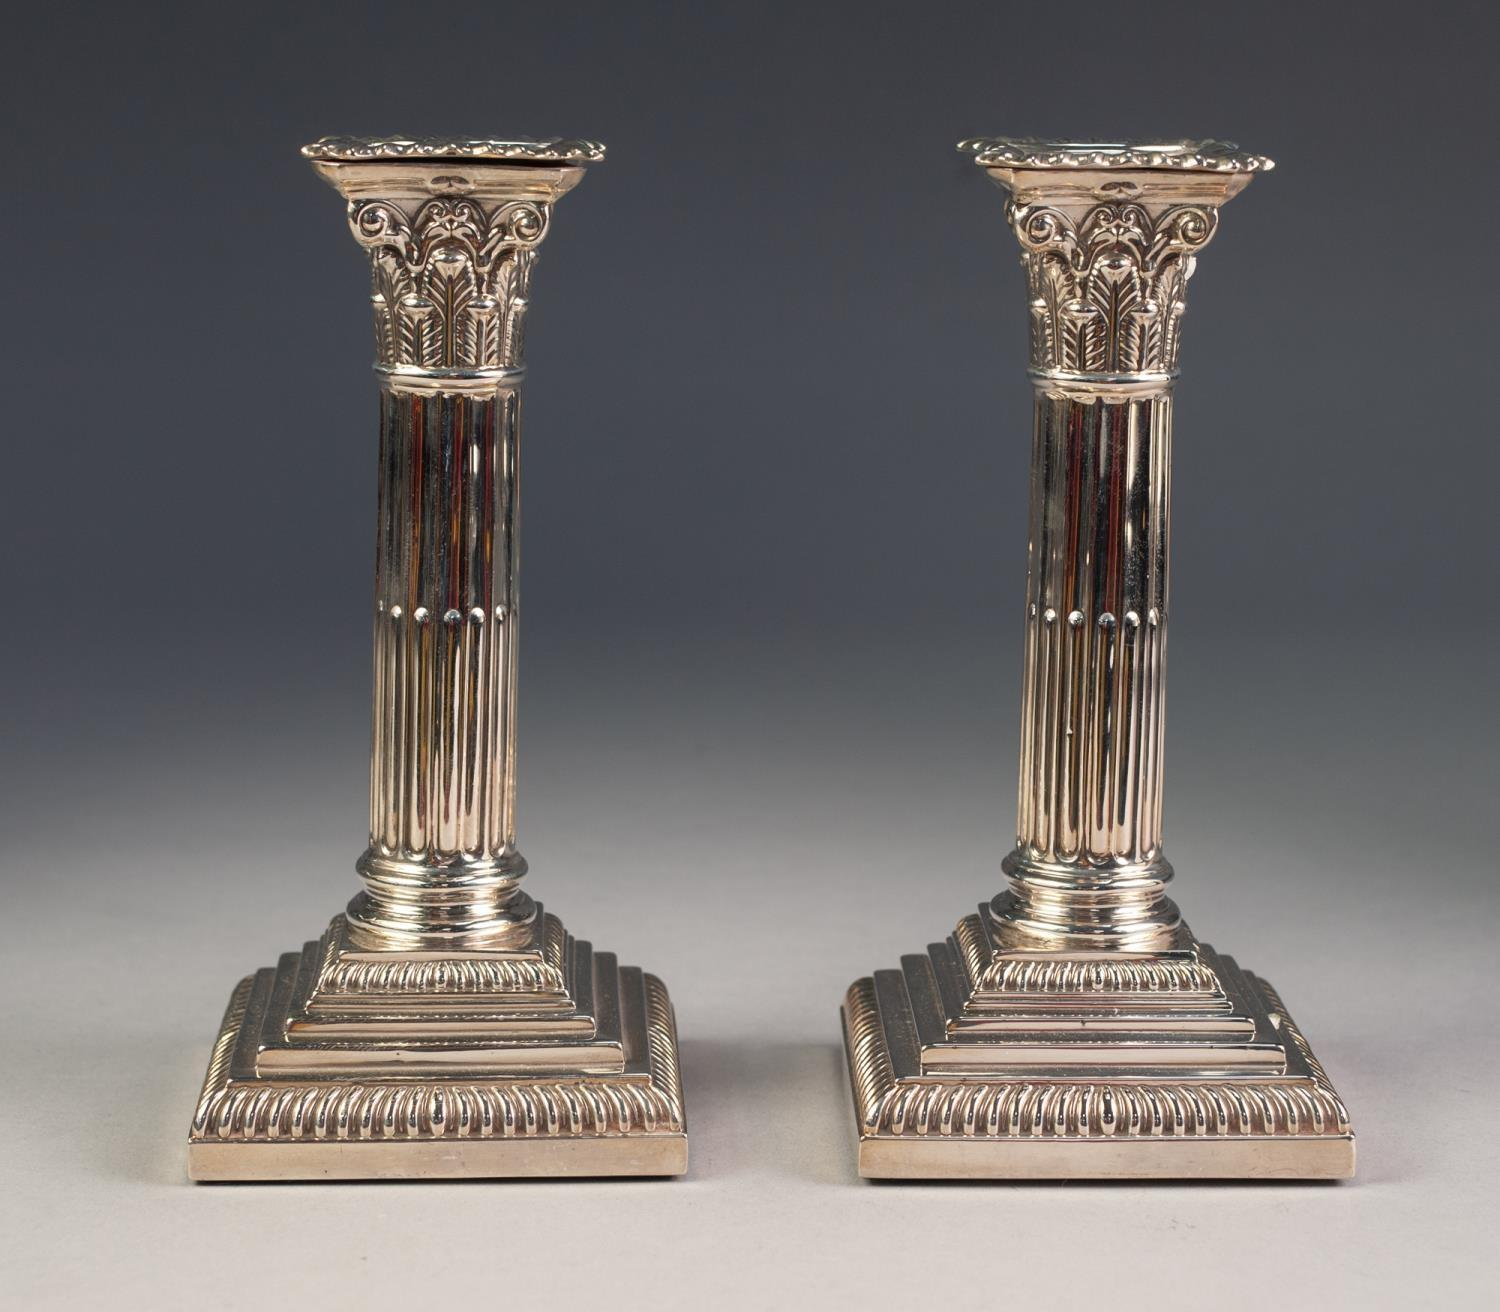 Lot 258 - A PAIR OF EDWARDIAN WEIGHTED SILVER CORINTHIAN COLUMN CANDLESTICKS WITH REMOVABLE GADROONED NOZZLES